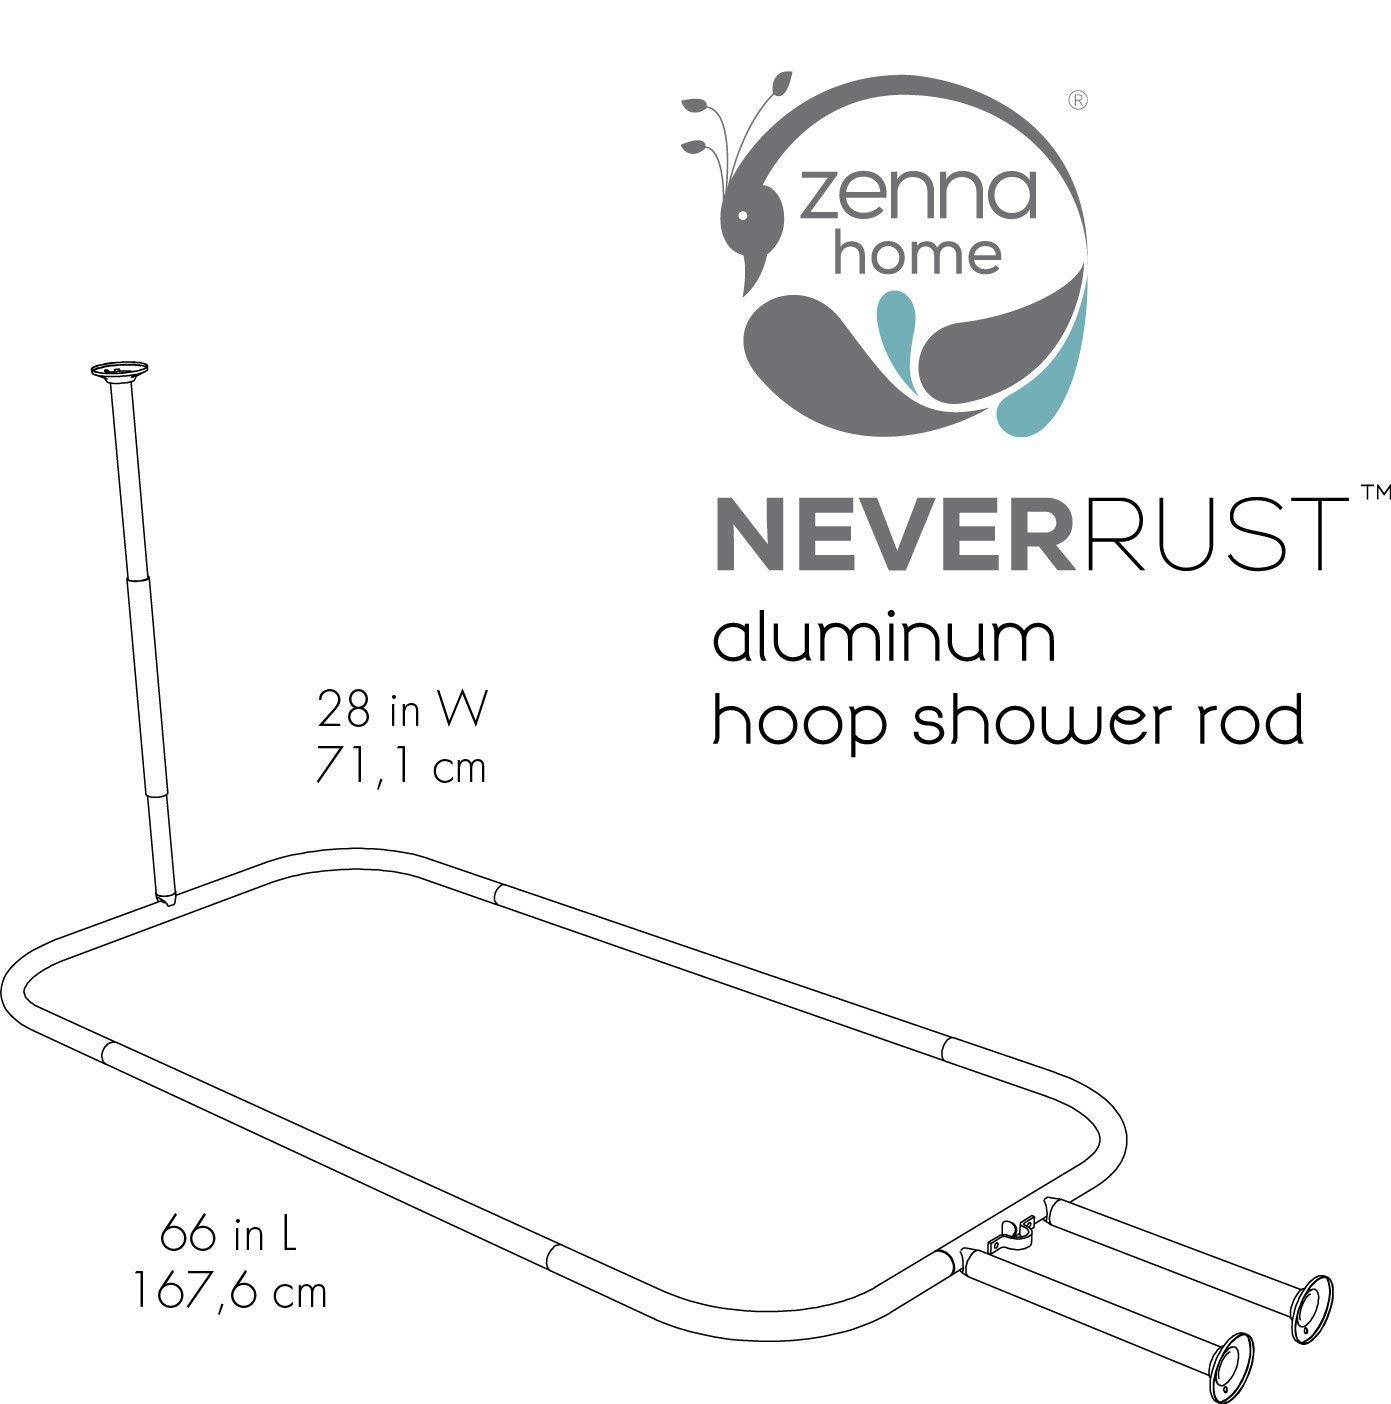 NeverRust Aluminum Hoop Shower Curtain Rod for Claw Foot Tubs ZPC Zenith Products Corporation Zenna Home 34941SS Chrome